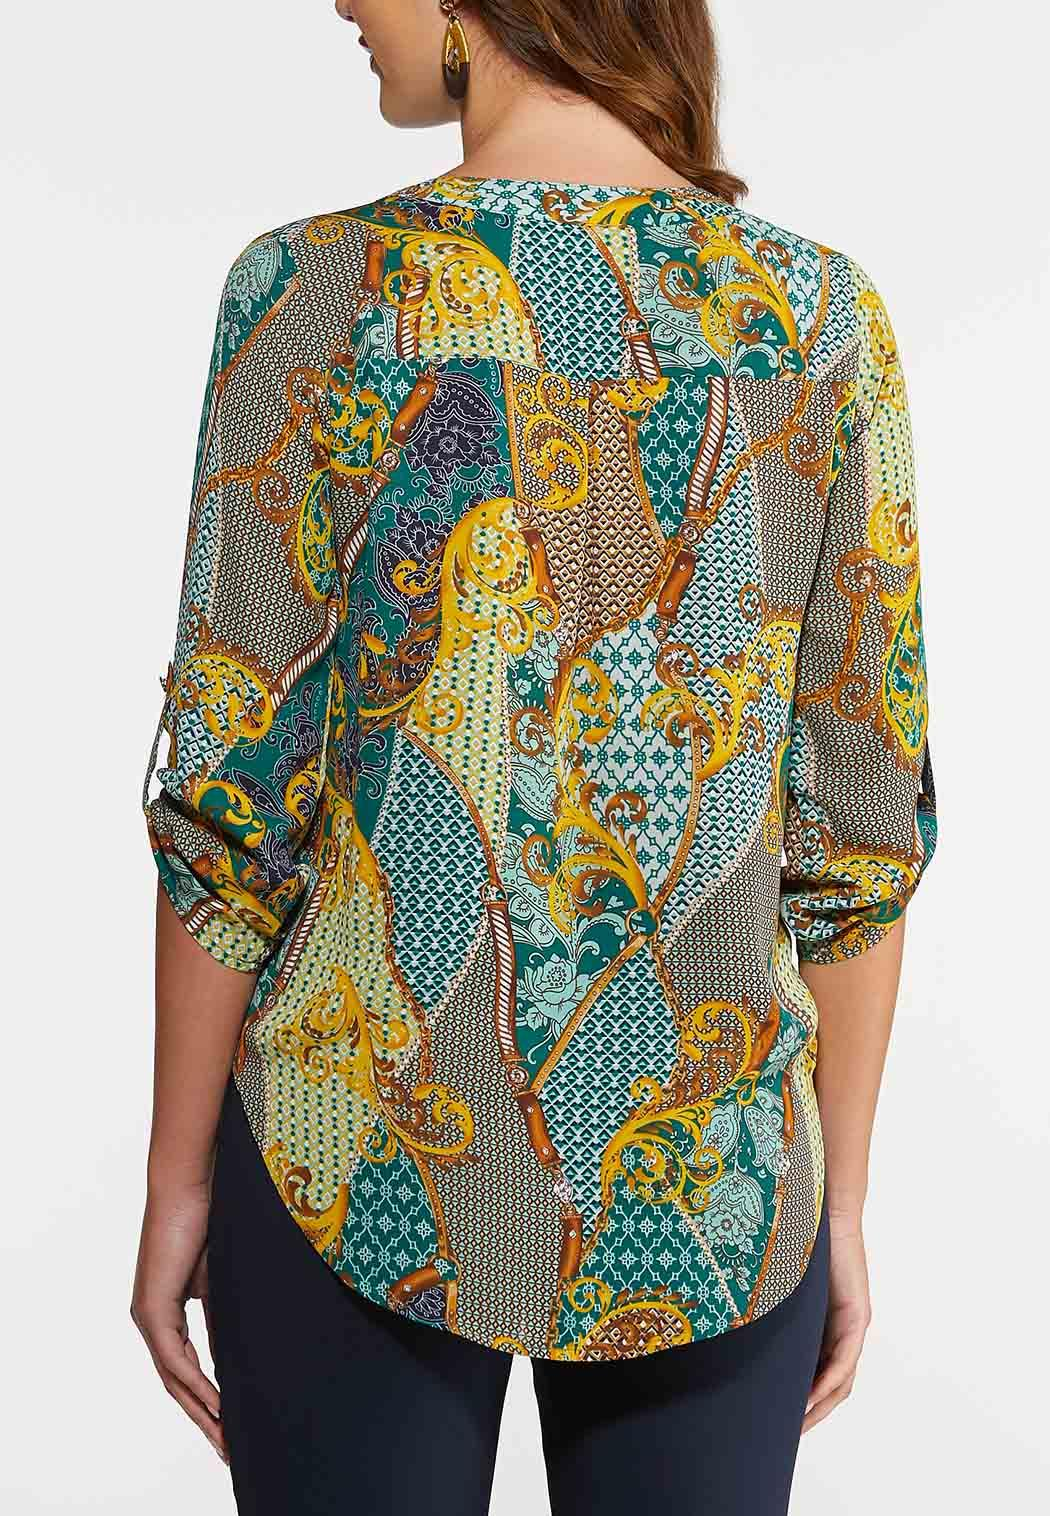 Plus Size Jeweled Green Paisley Top (Item #43980734)